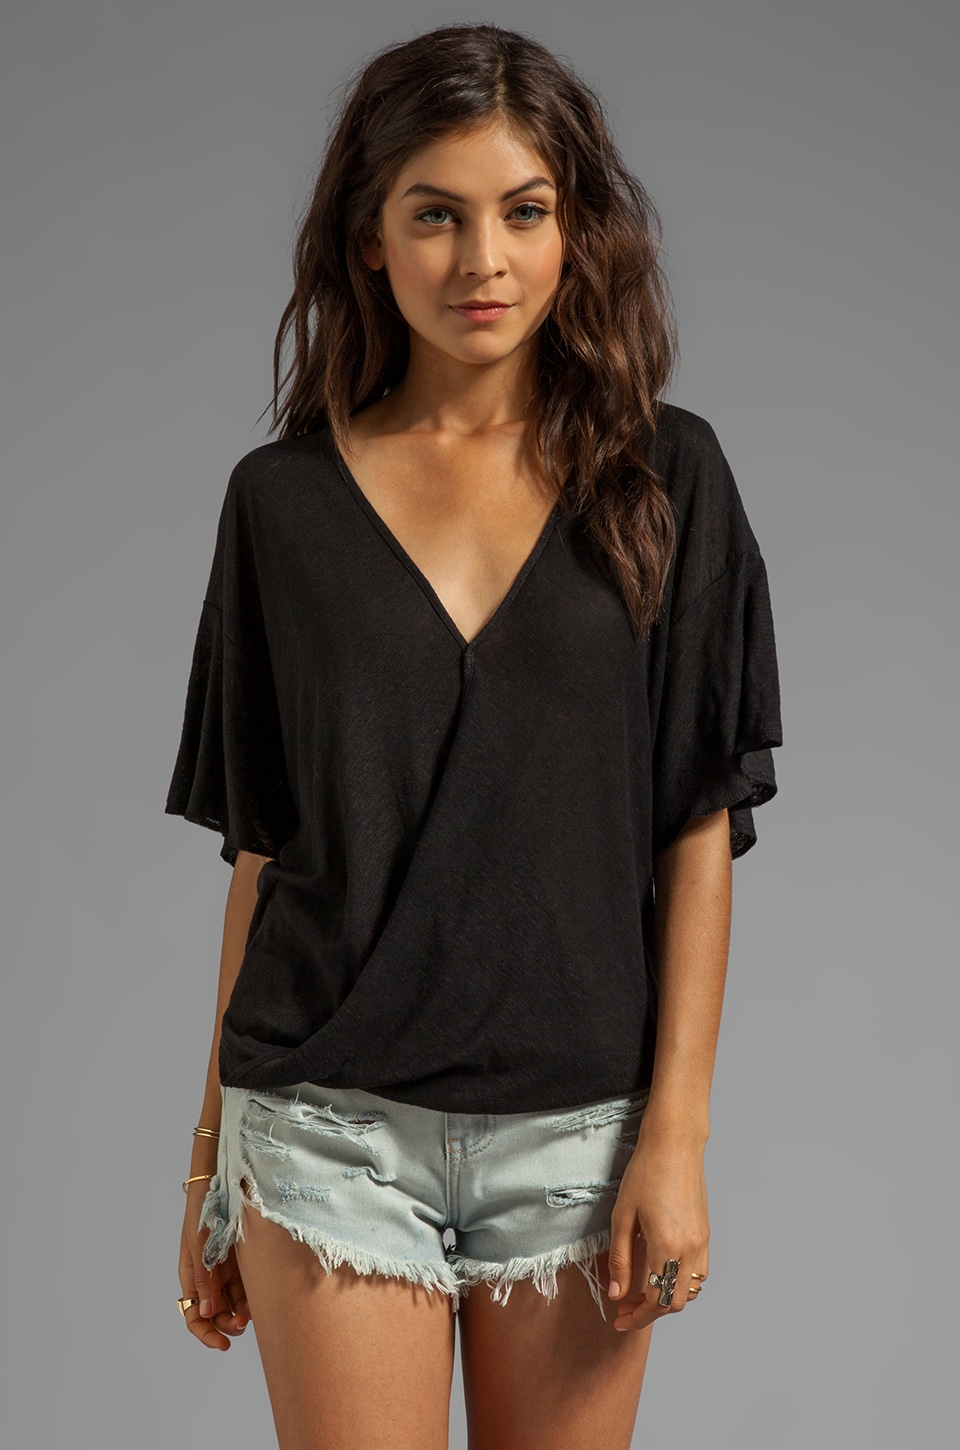 Nation LTD Solvang Top in Black